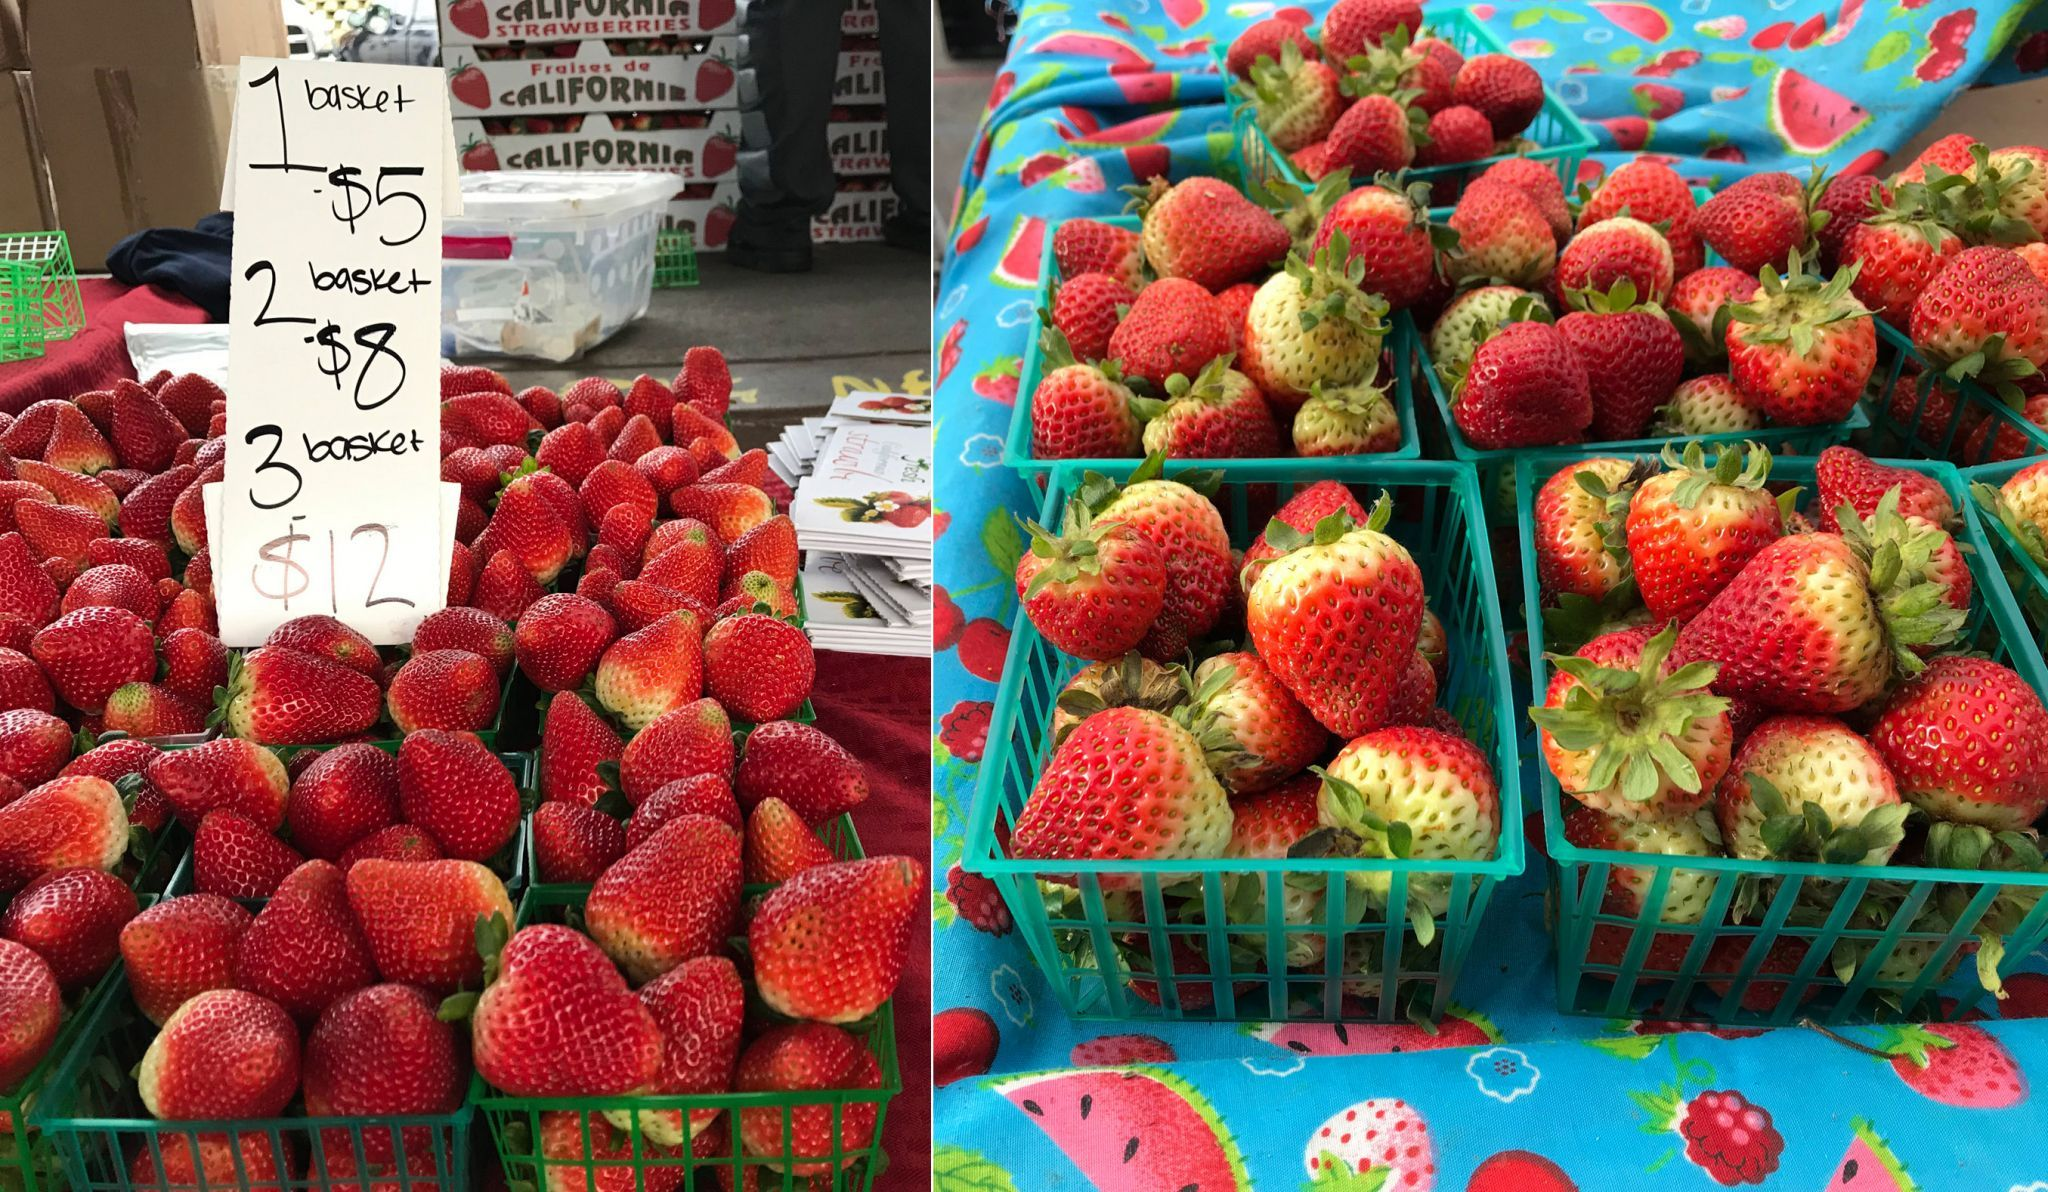 Ferry Building Vs Alemany Which Farmers Market Has Better Prices Farmers Market California Food Beautiful Fruits